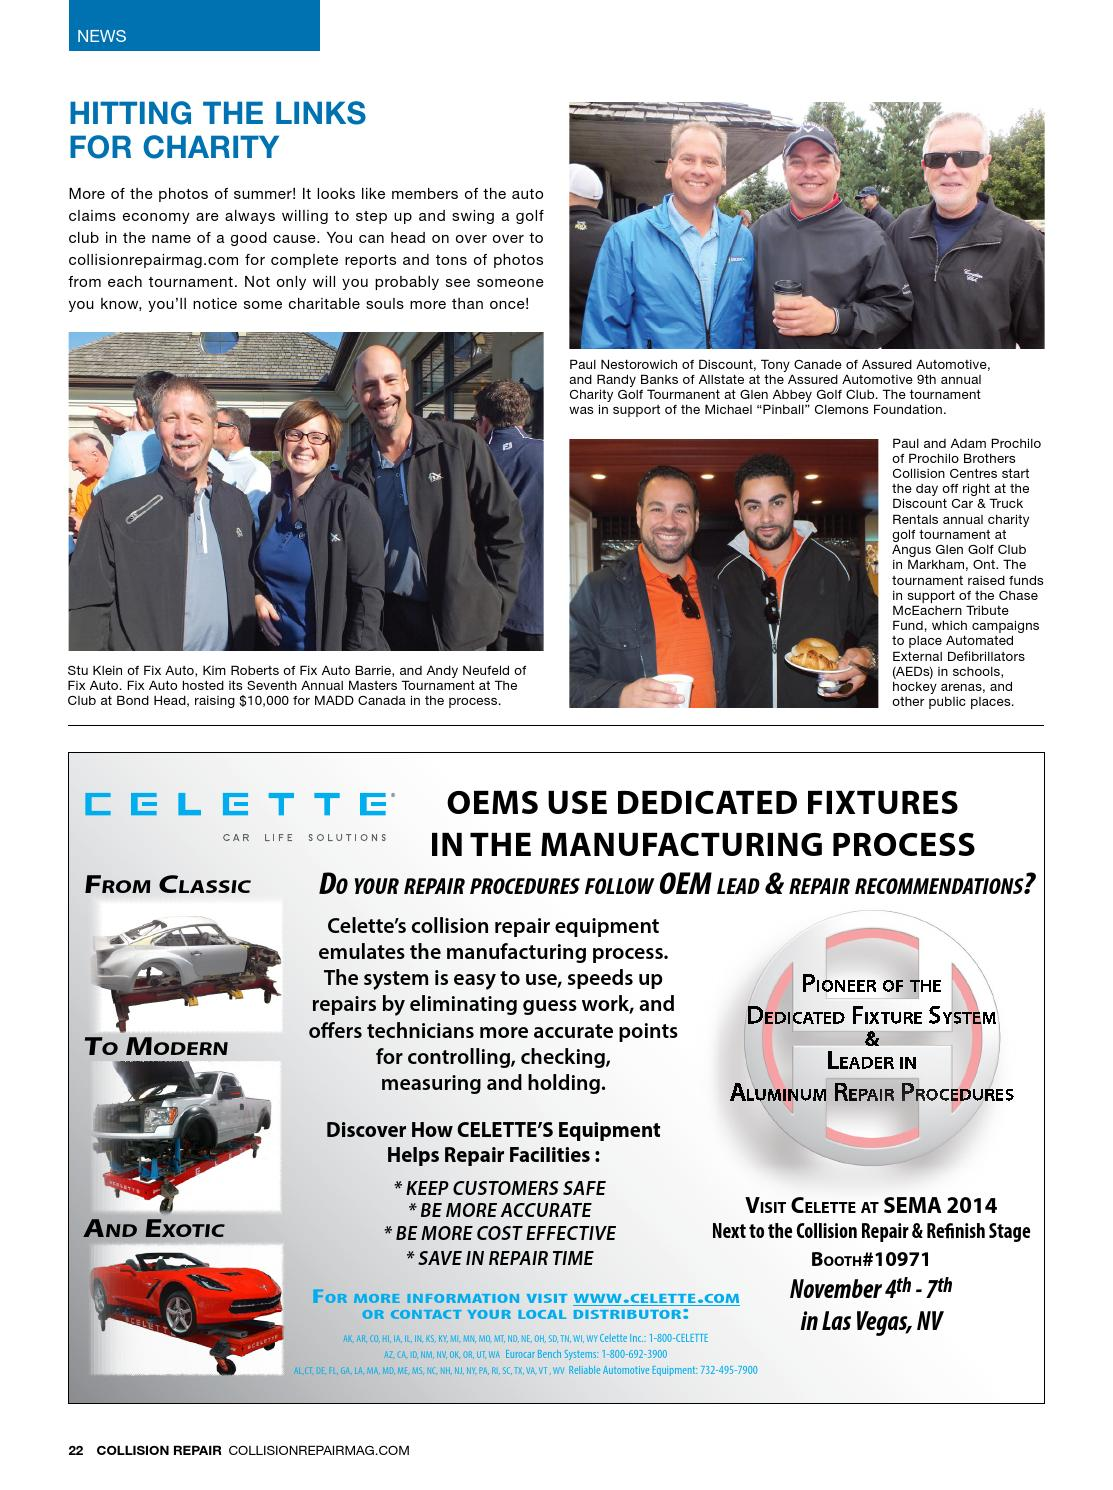 Collision Repair 13 5 October 2014 By Media Matters Issuu